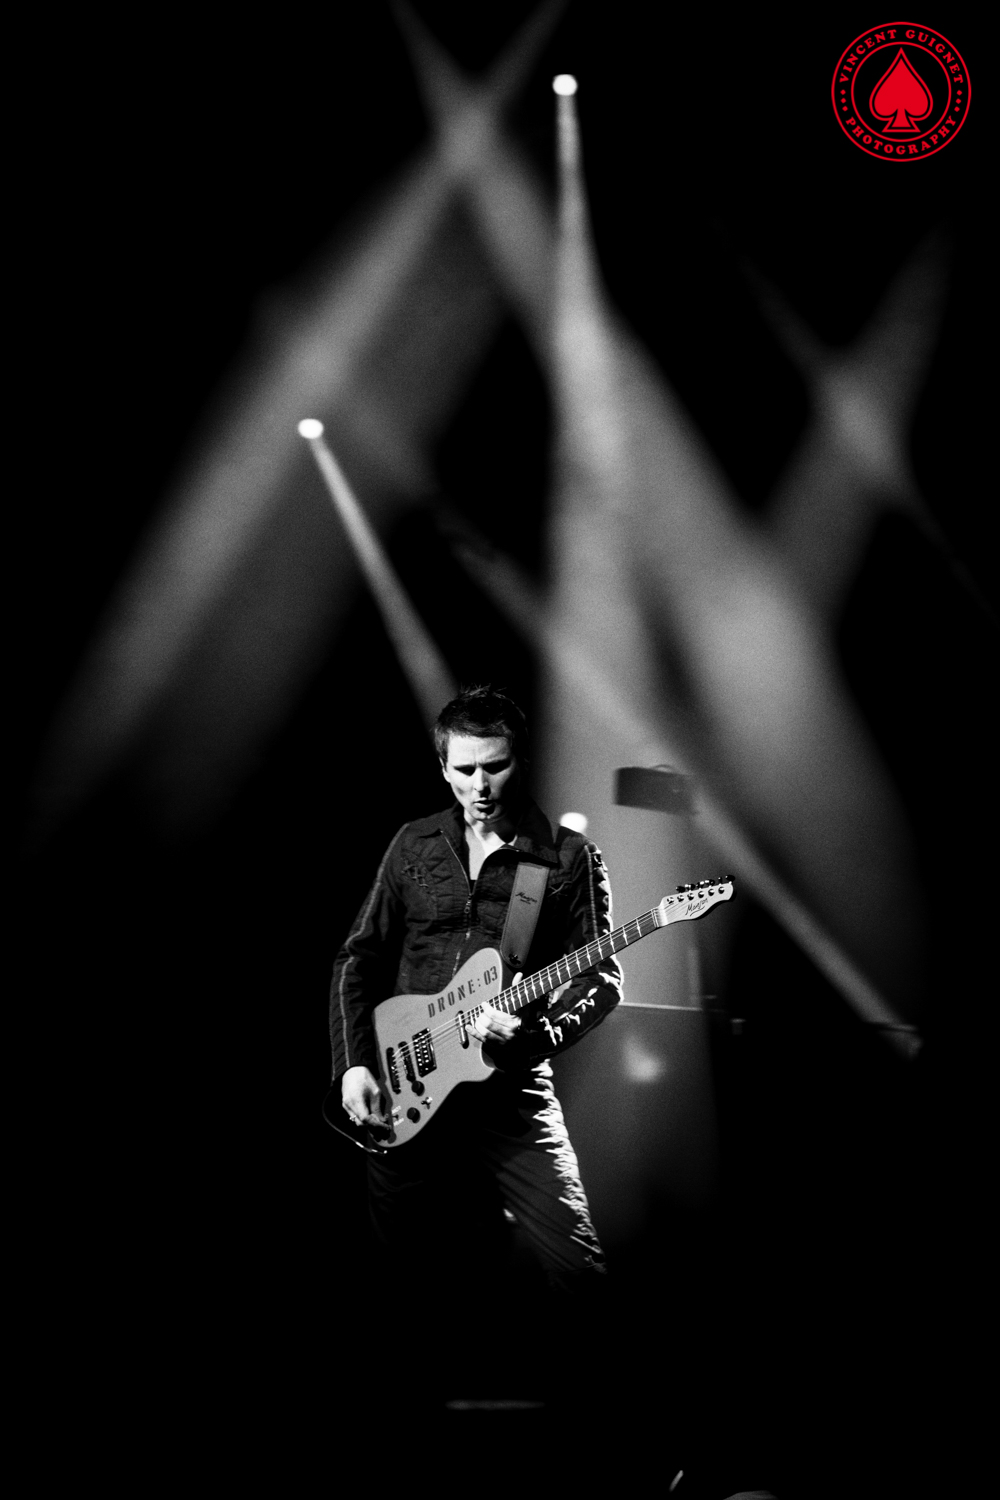 MUSE - Matthew Bellamy